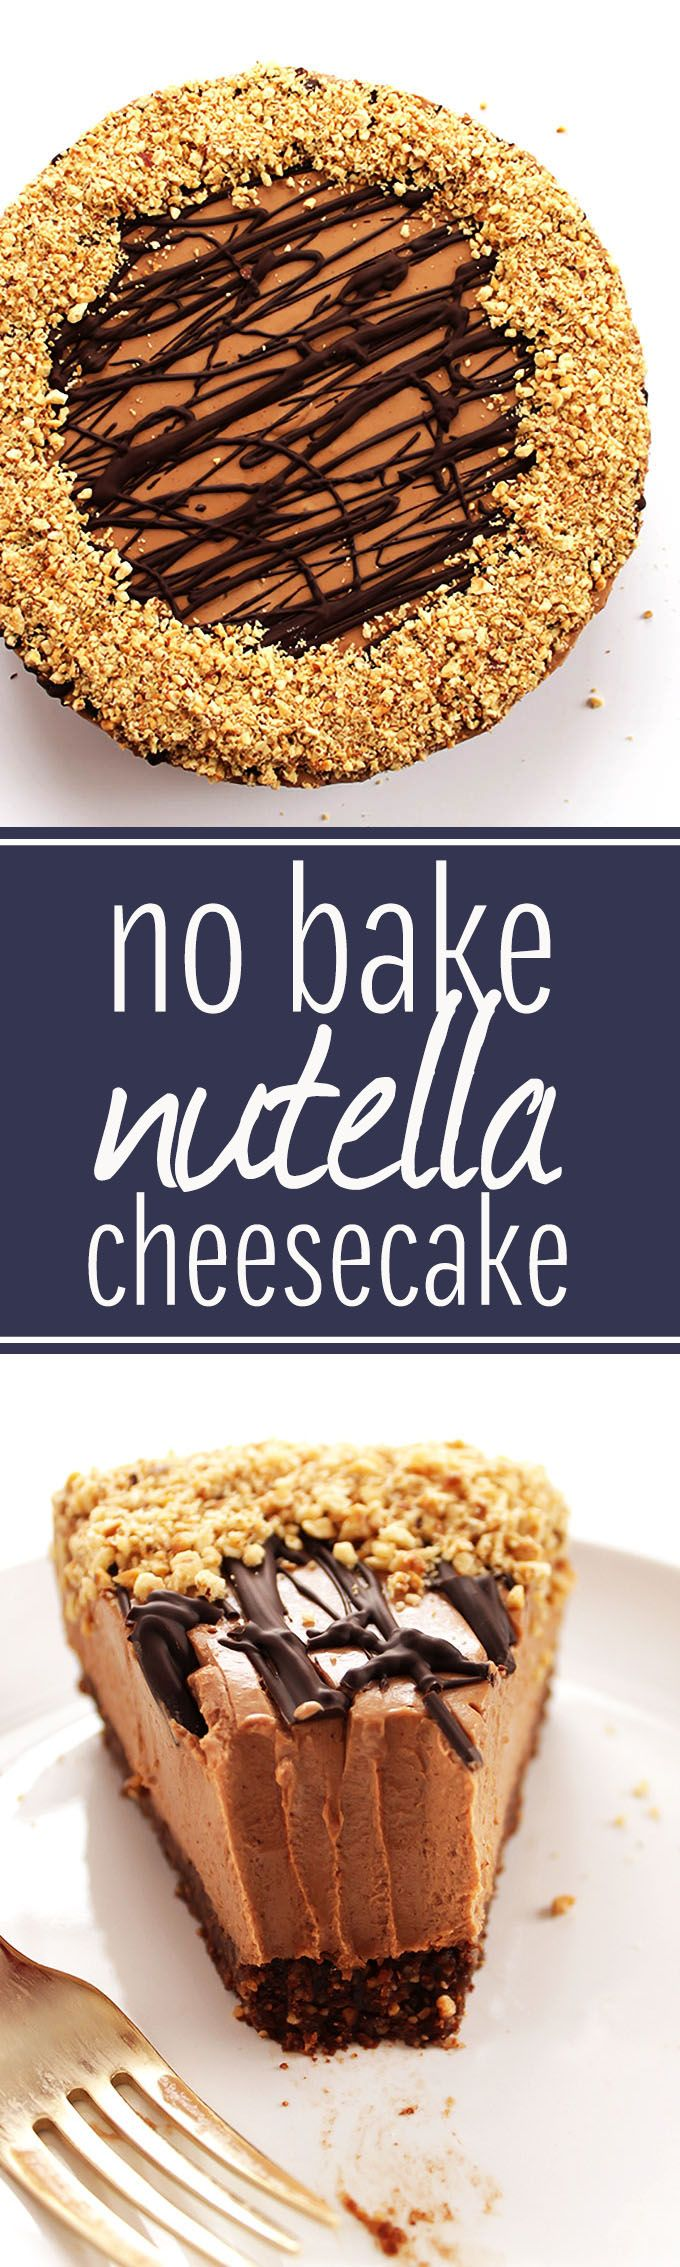 No Bake Nutella Cheesecake - Rich chocolate + hazelnuts with a gluten free crust. We LOVE this recipe for a special occasion! Perfect for Valentine's day! (Gluten Free)  | robustrecipes.com